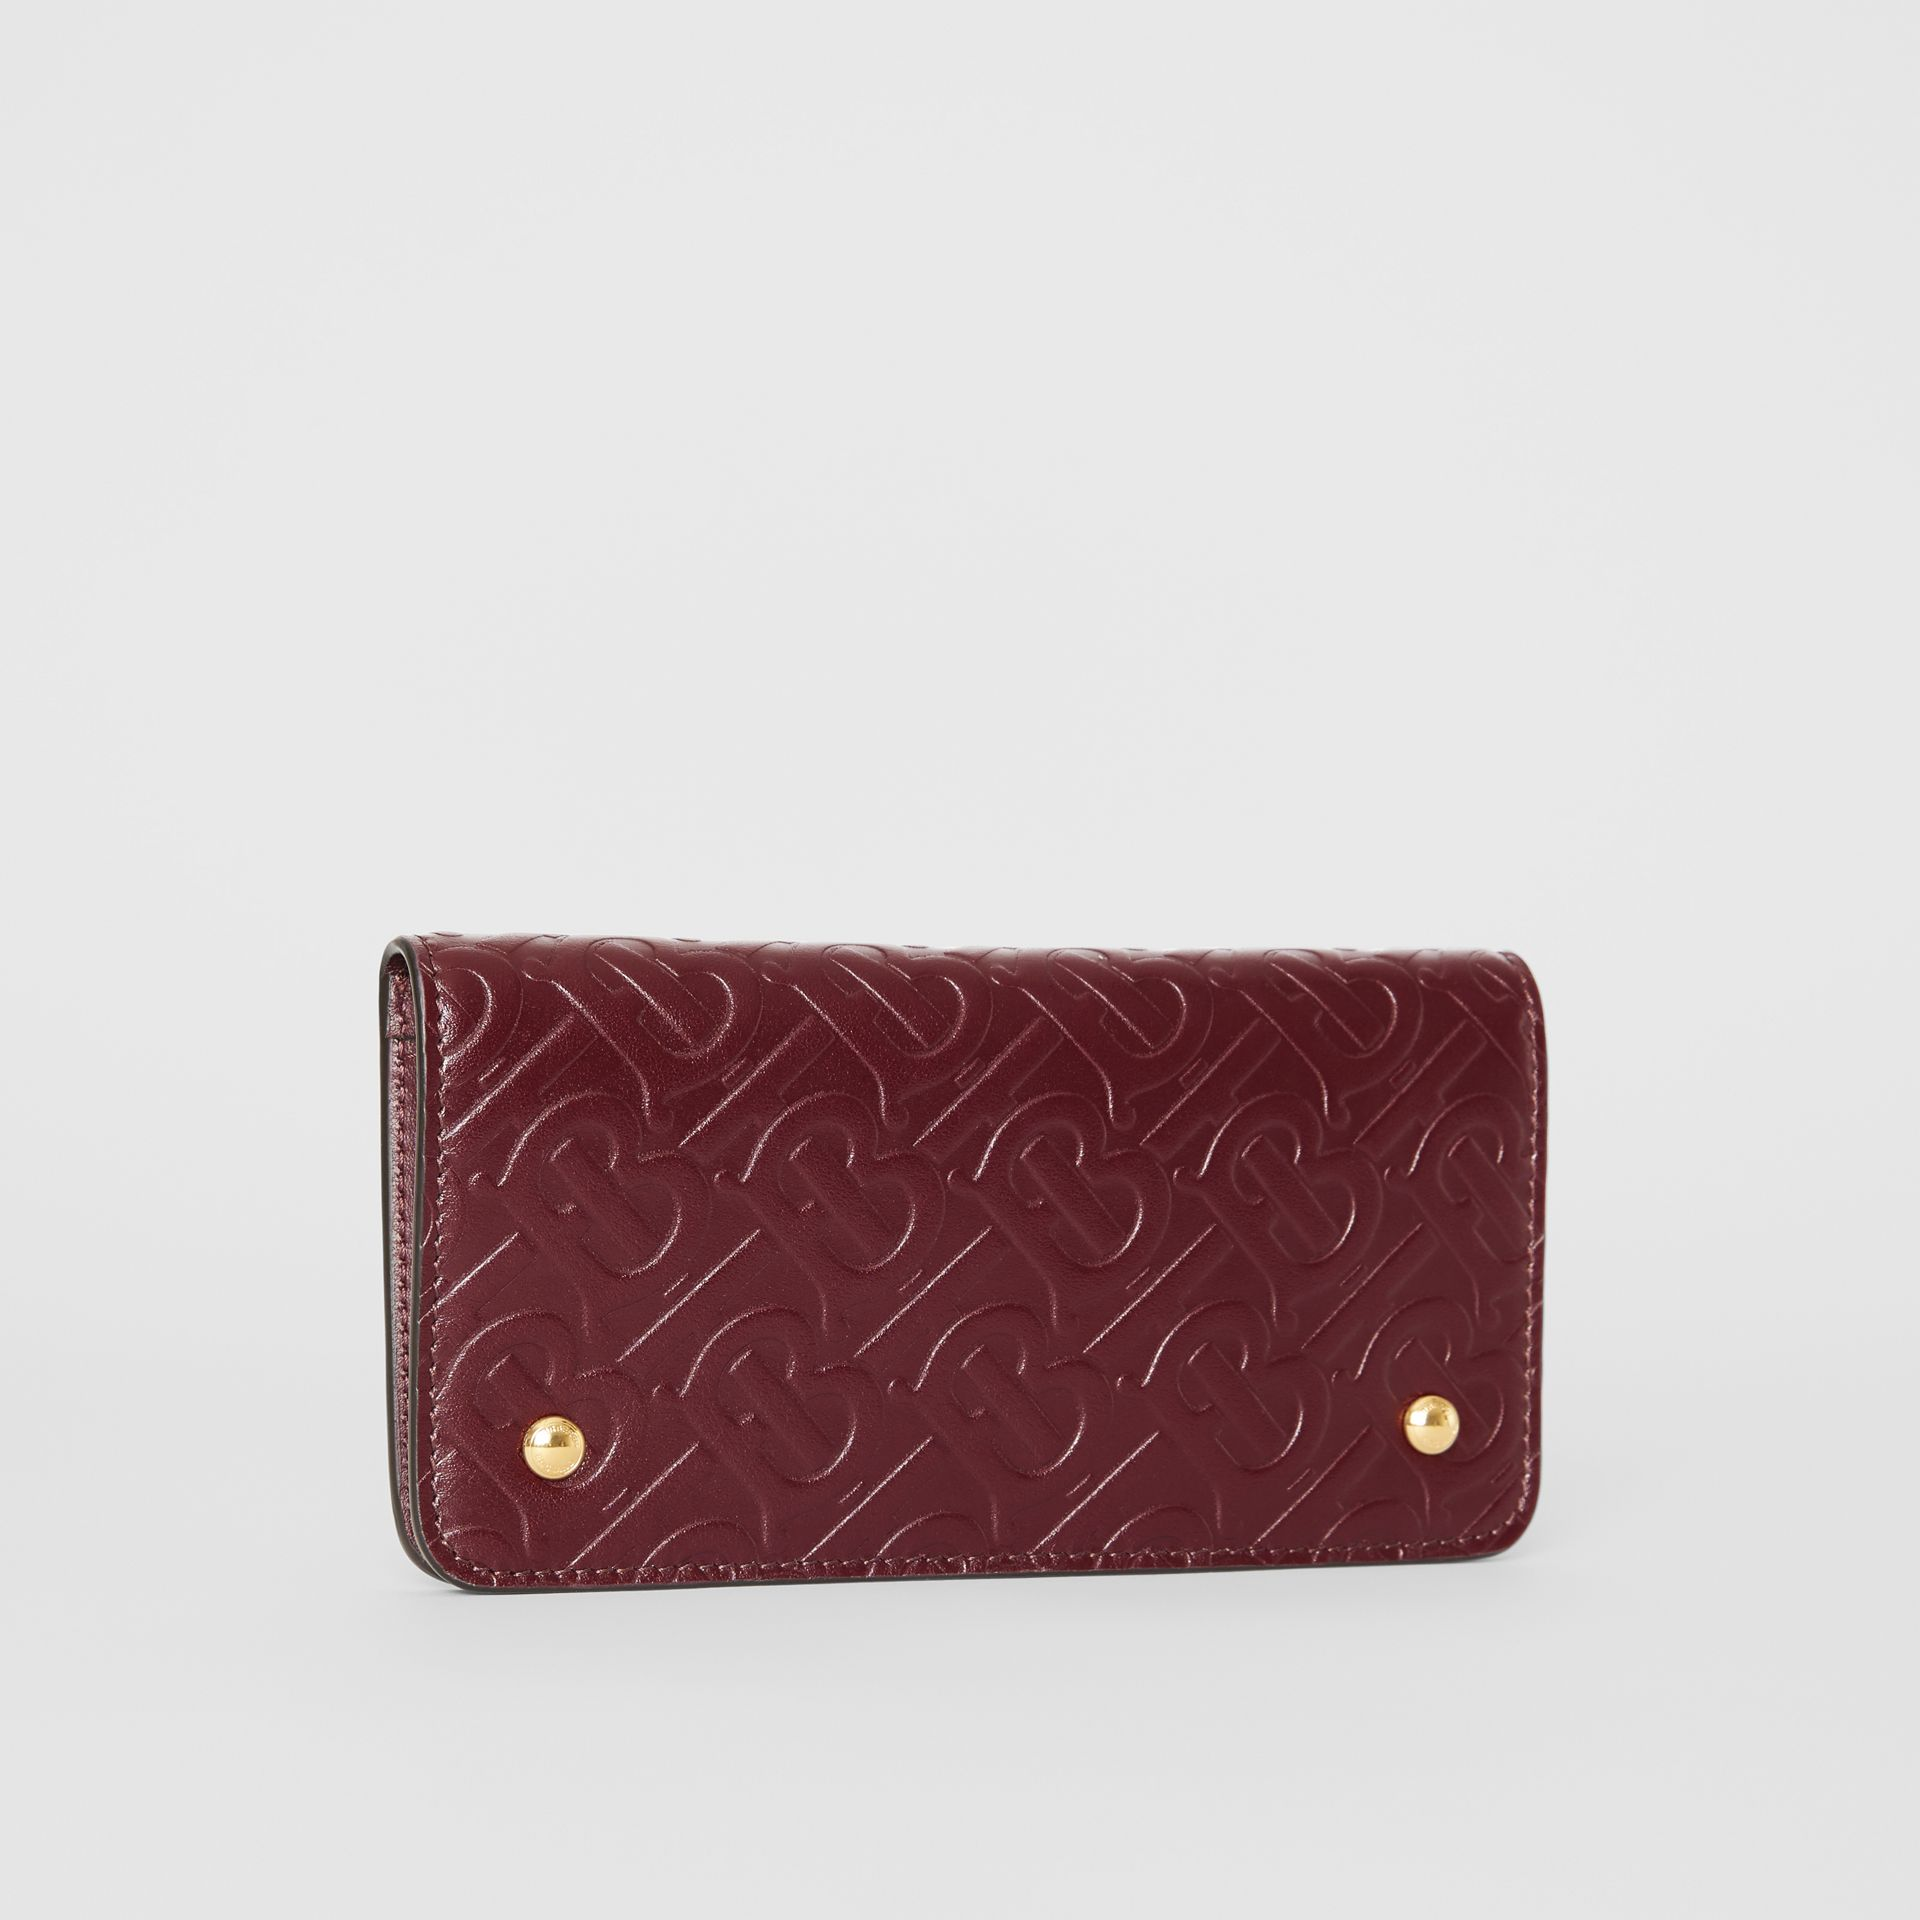 Monogram Leather Phone Wallet in Oxblood | Burberry Singapore - gallery image 4